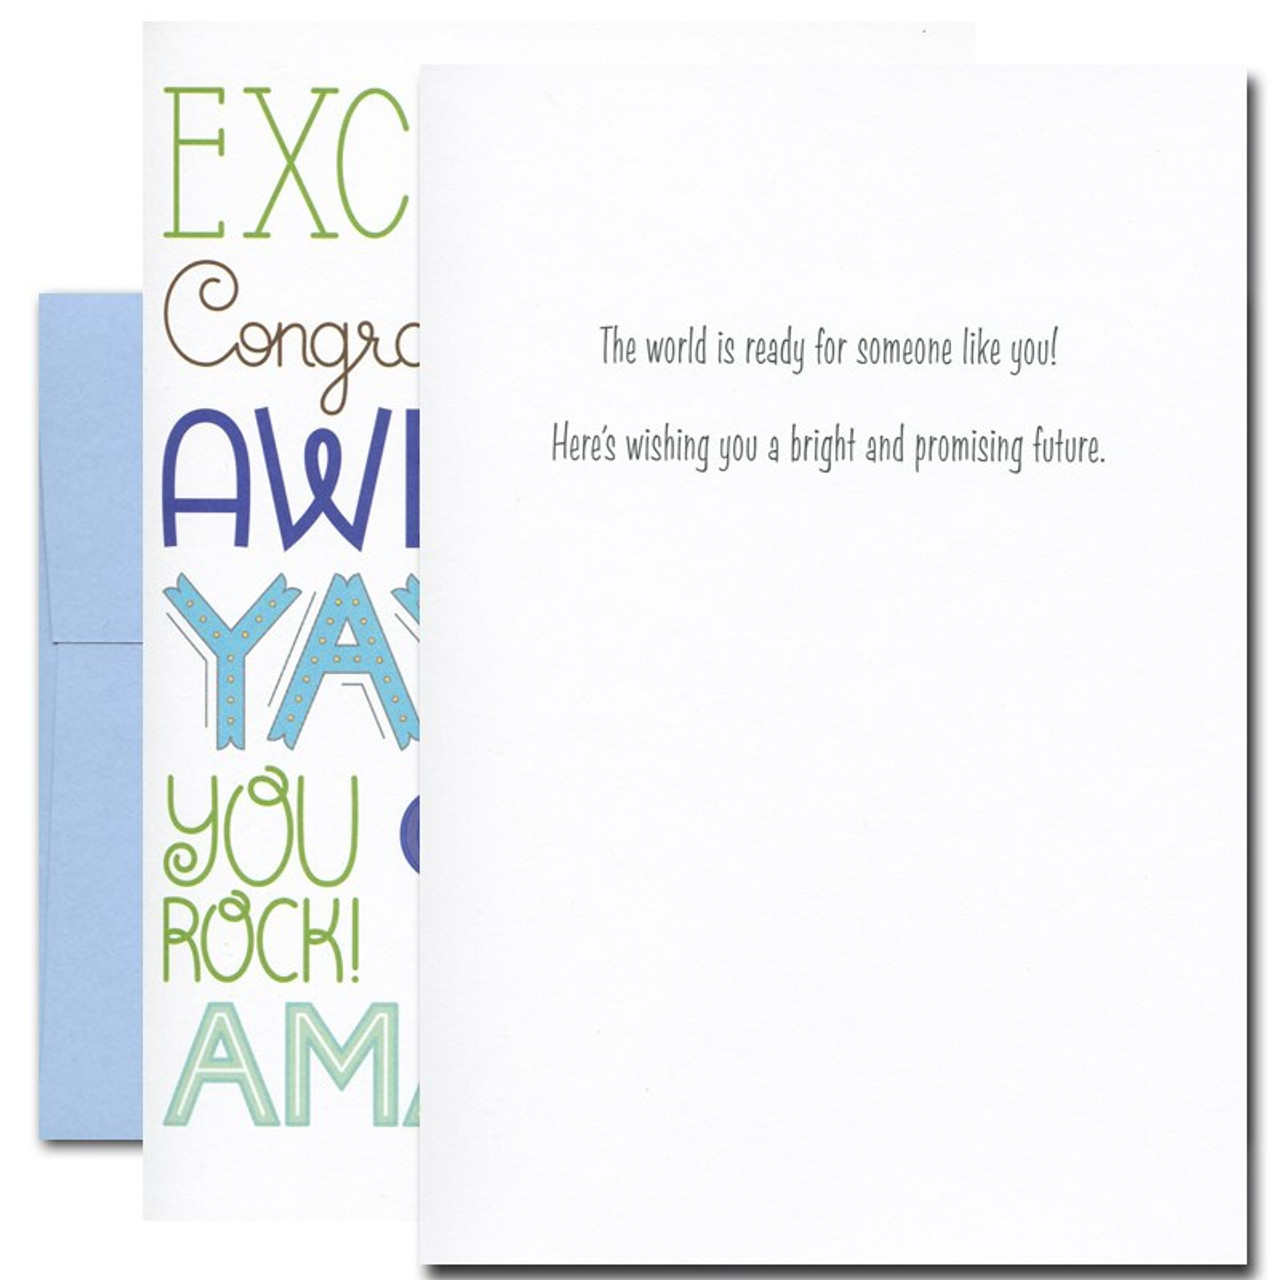 Inside of Excellent Congratulations Card reads: The world is ready for someone like you! Here's wishing you a bright and promising future.